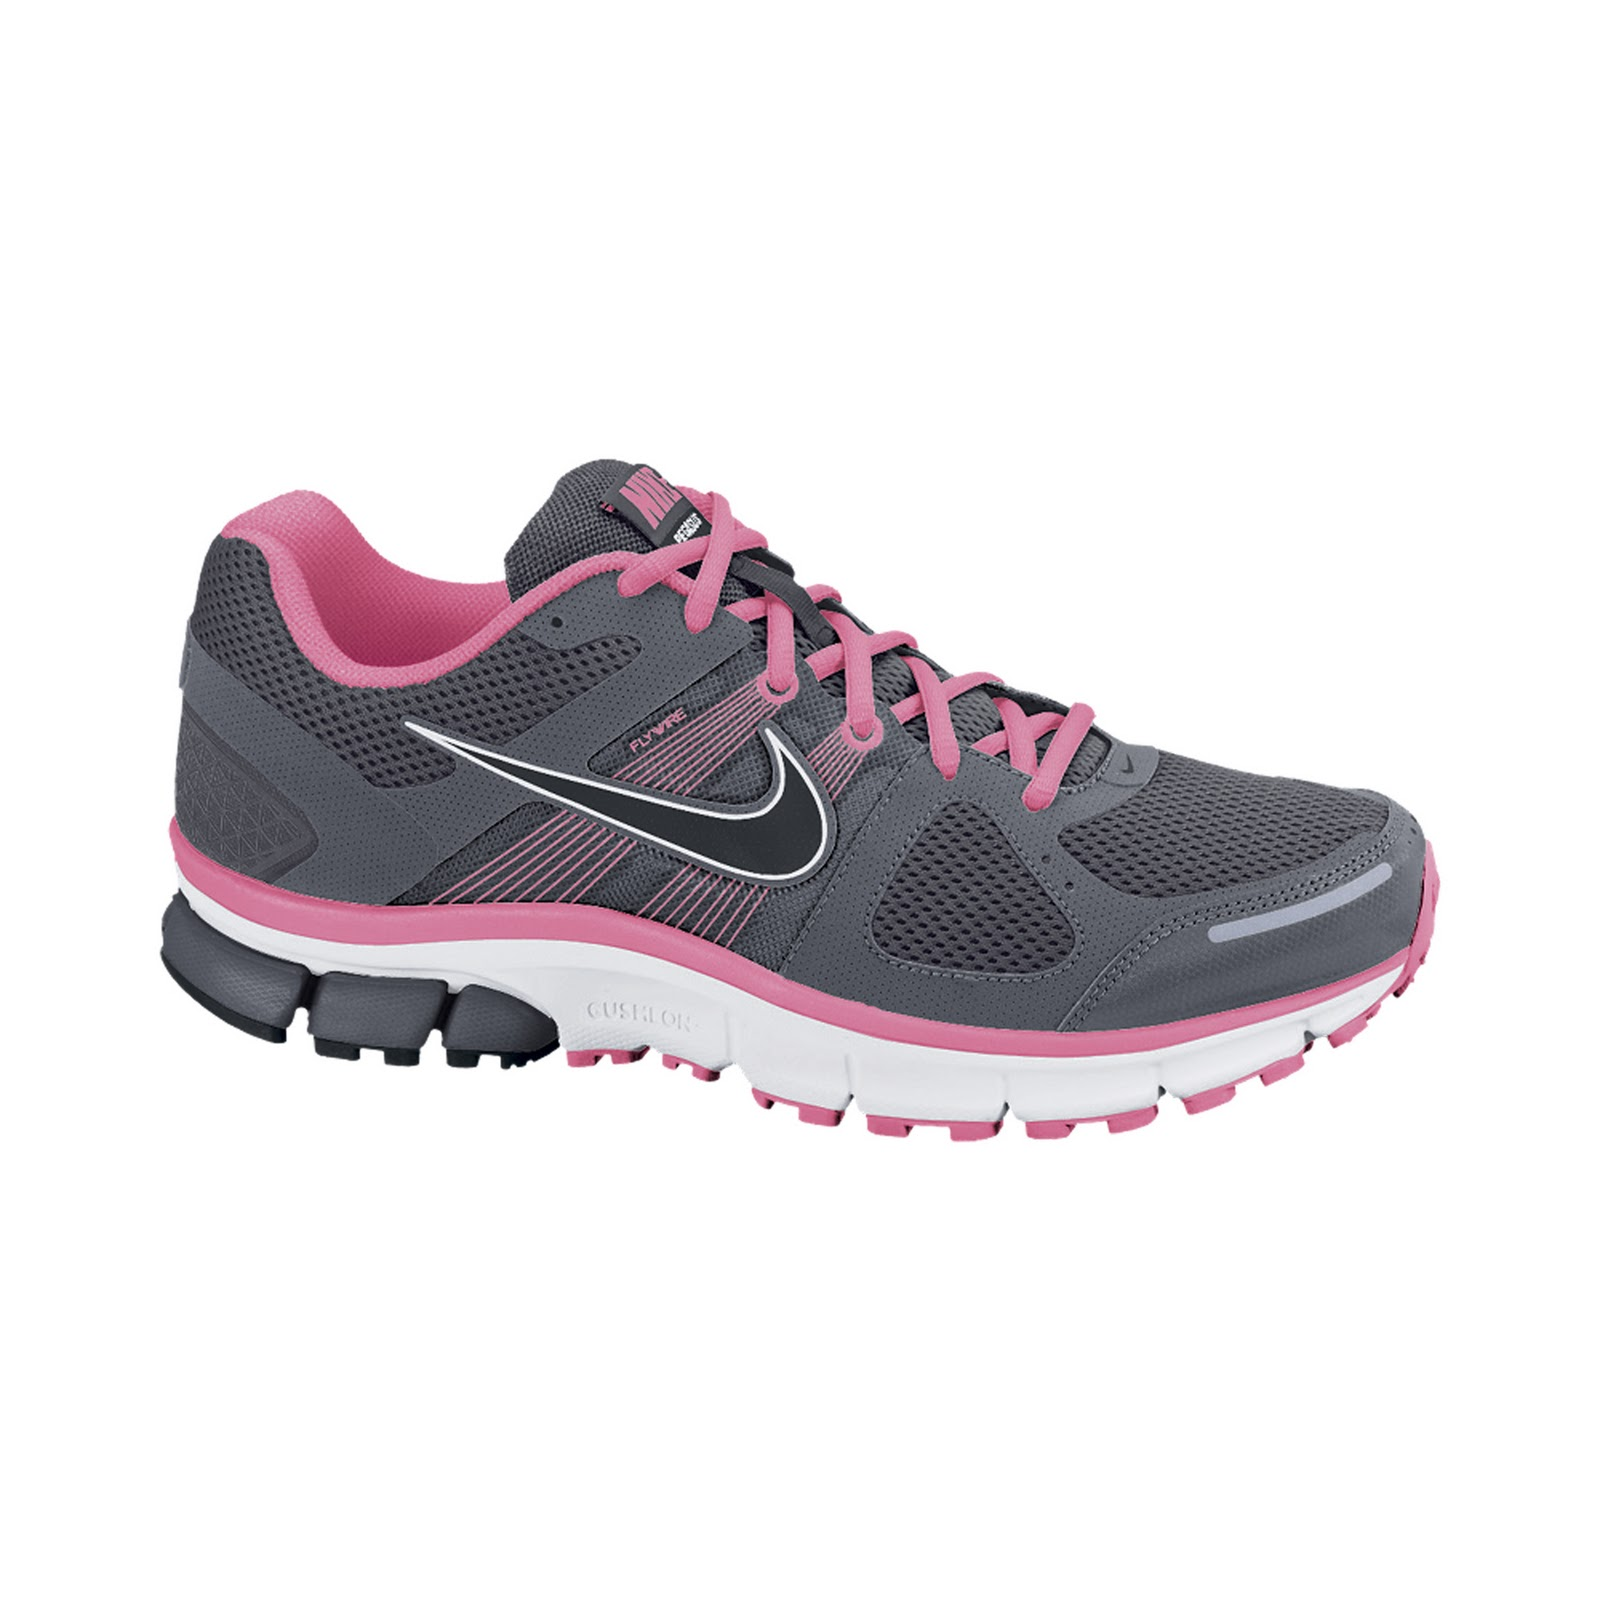 Nike Air Pegasus  Ladies Running Shoes Review